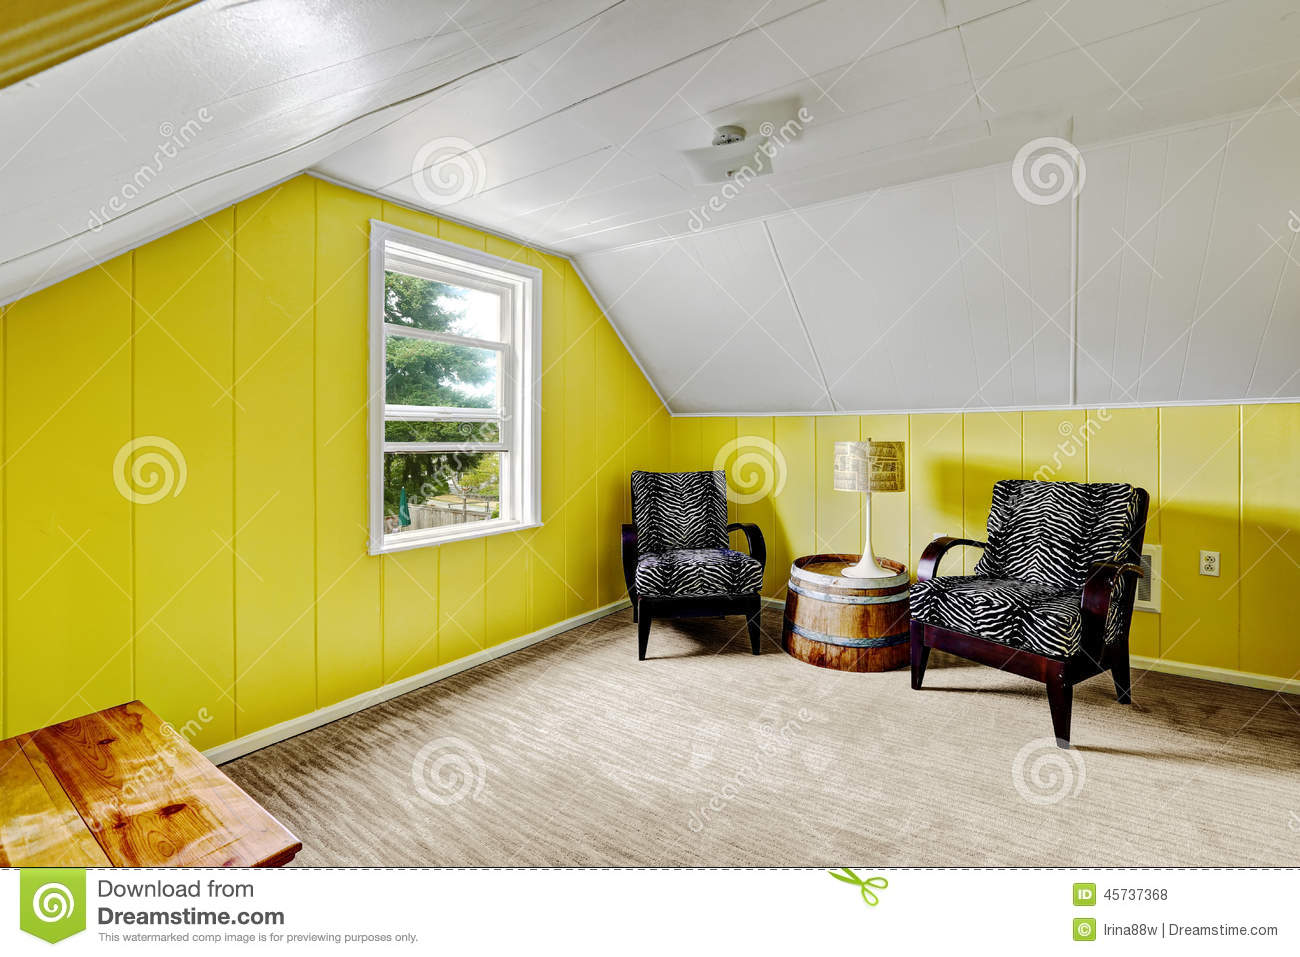 Bright Yellow Room With Sitting Area Stock Photo - Image of real ...